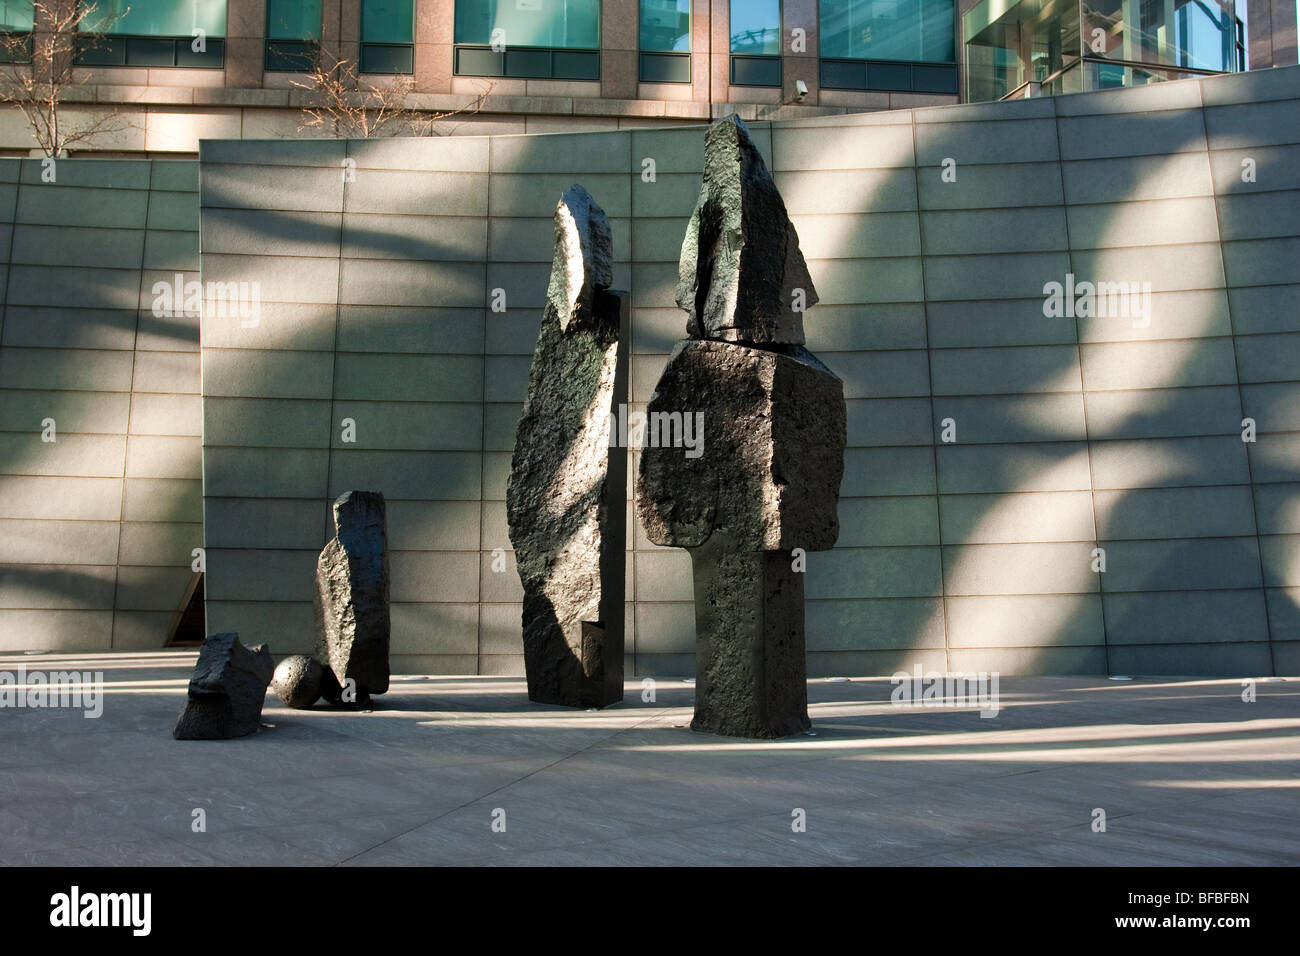 Sculpted in basalt by Xavier Corbero is The Broad Family, situated at Broadgate office complex in the City of London. - Stock Image